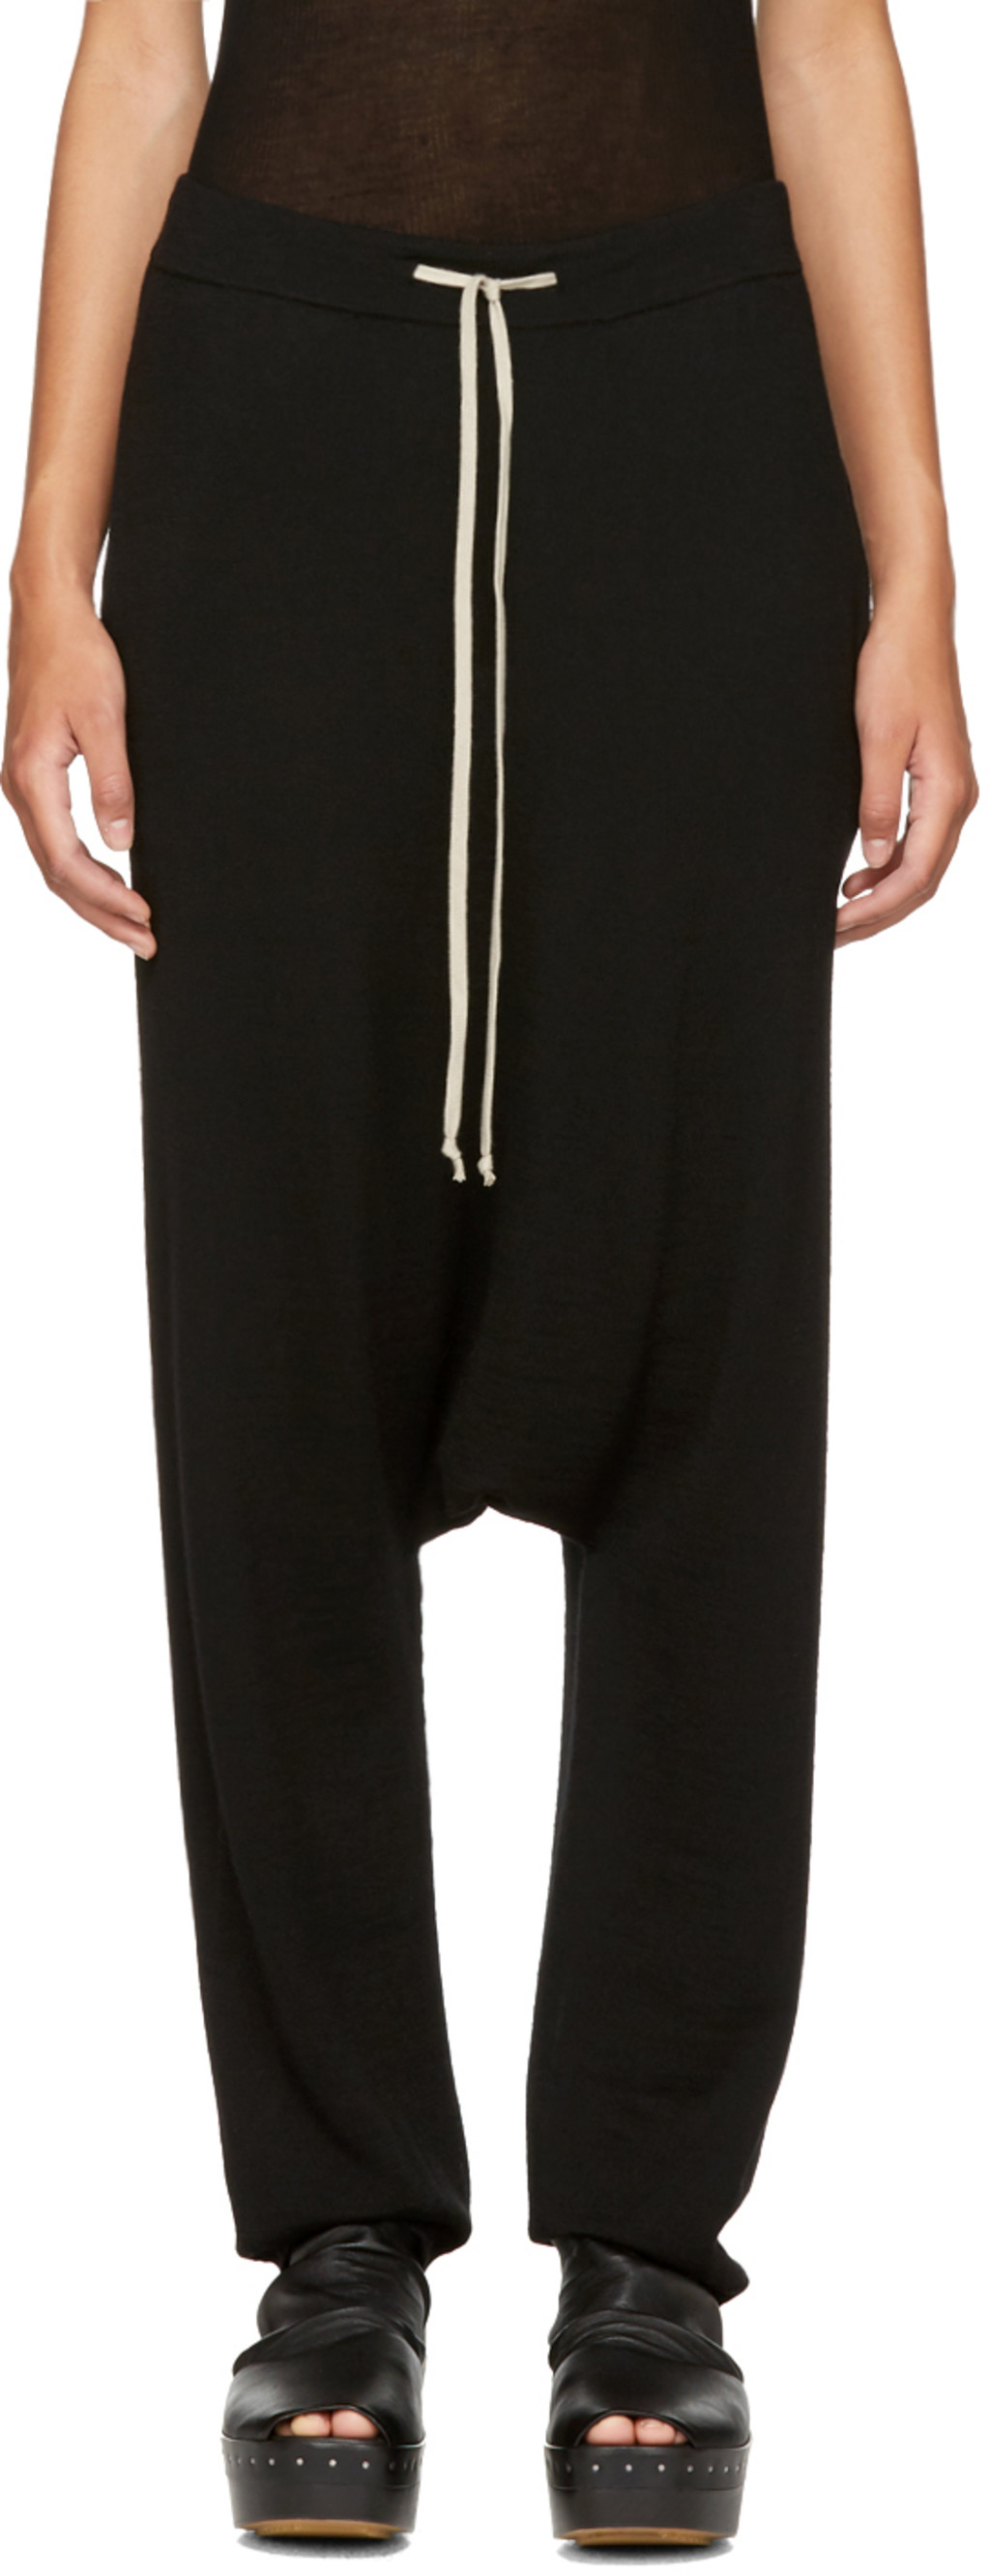 Clearance New Arrival Black Wool Drawstring Long Lounge Pants Rick Owens Outlet Original 77oIbFuG